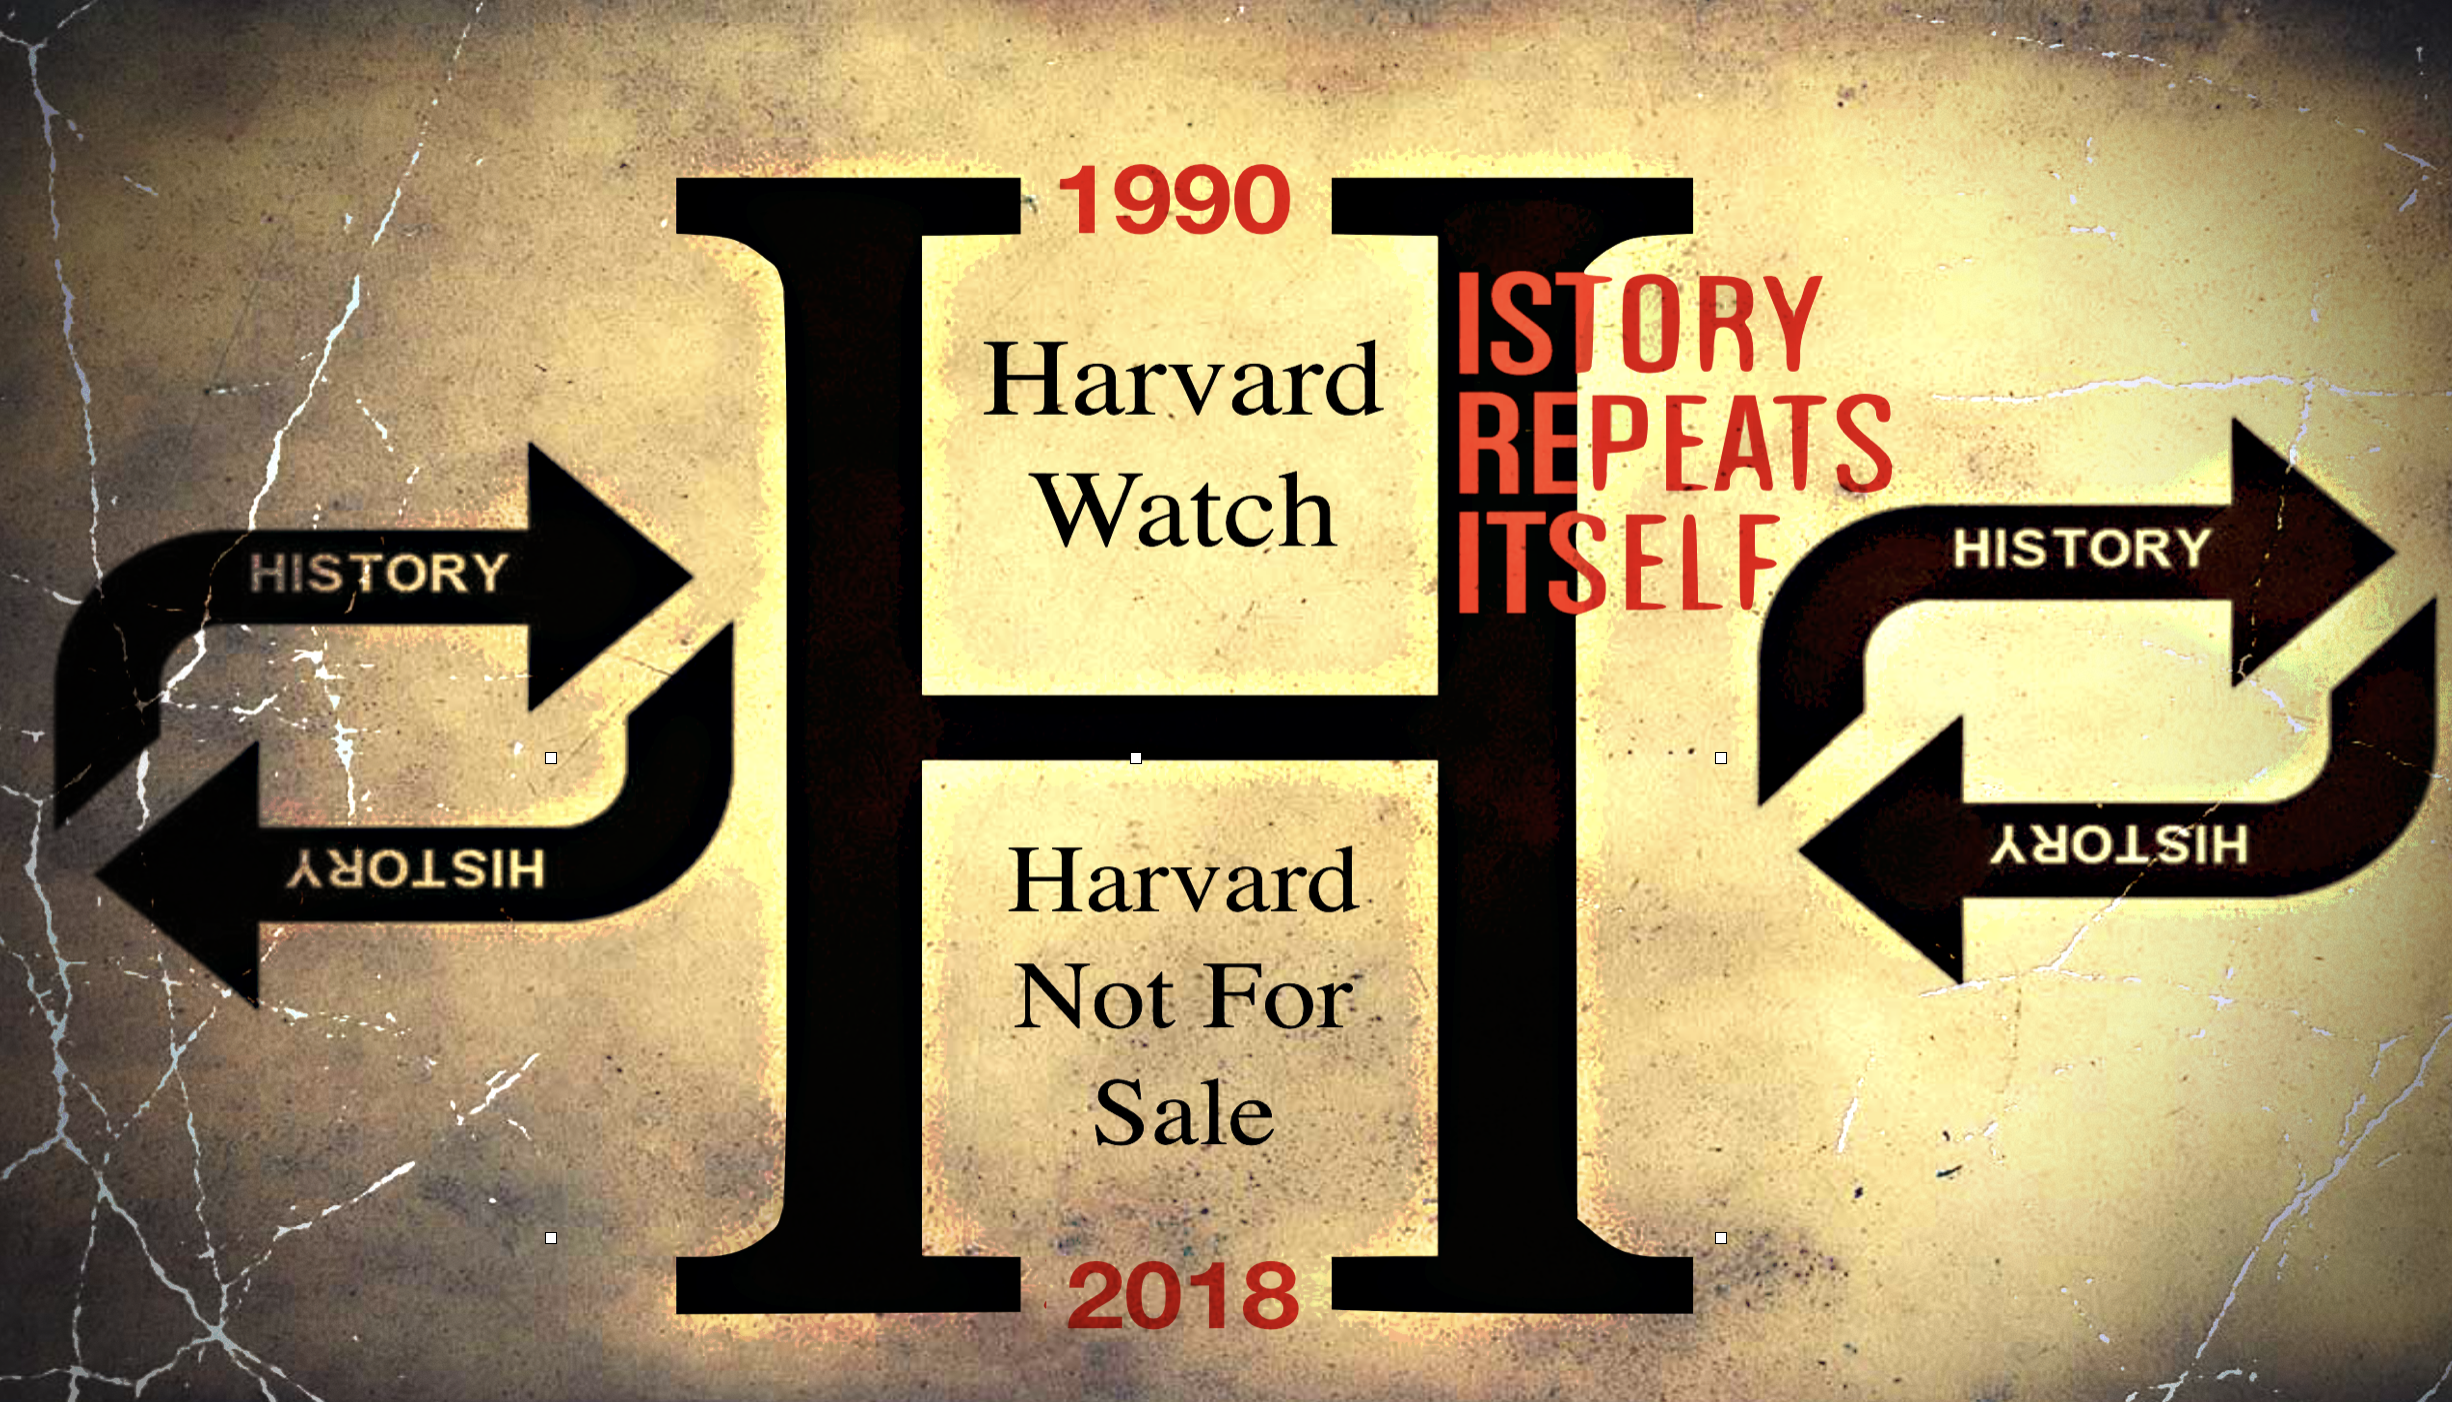 """In 1990, when Harvard was in the process of selecting a new President, Harvard students and alumni rallied together to crest Harvard Watch. According to its founders, Harvard Watch was """"a broad-based coalition of students and alumni across the University's schools concerned with corporate governance at Harvard."""" Sound familiar?"""